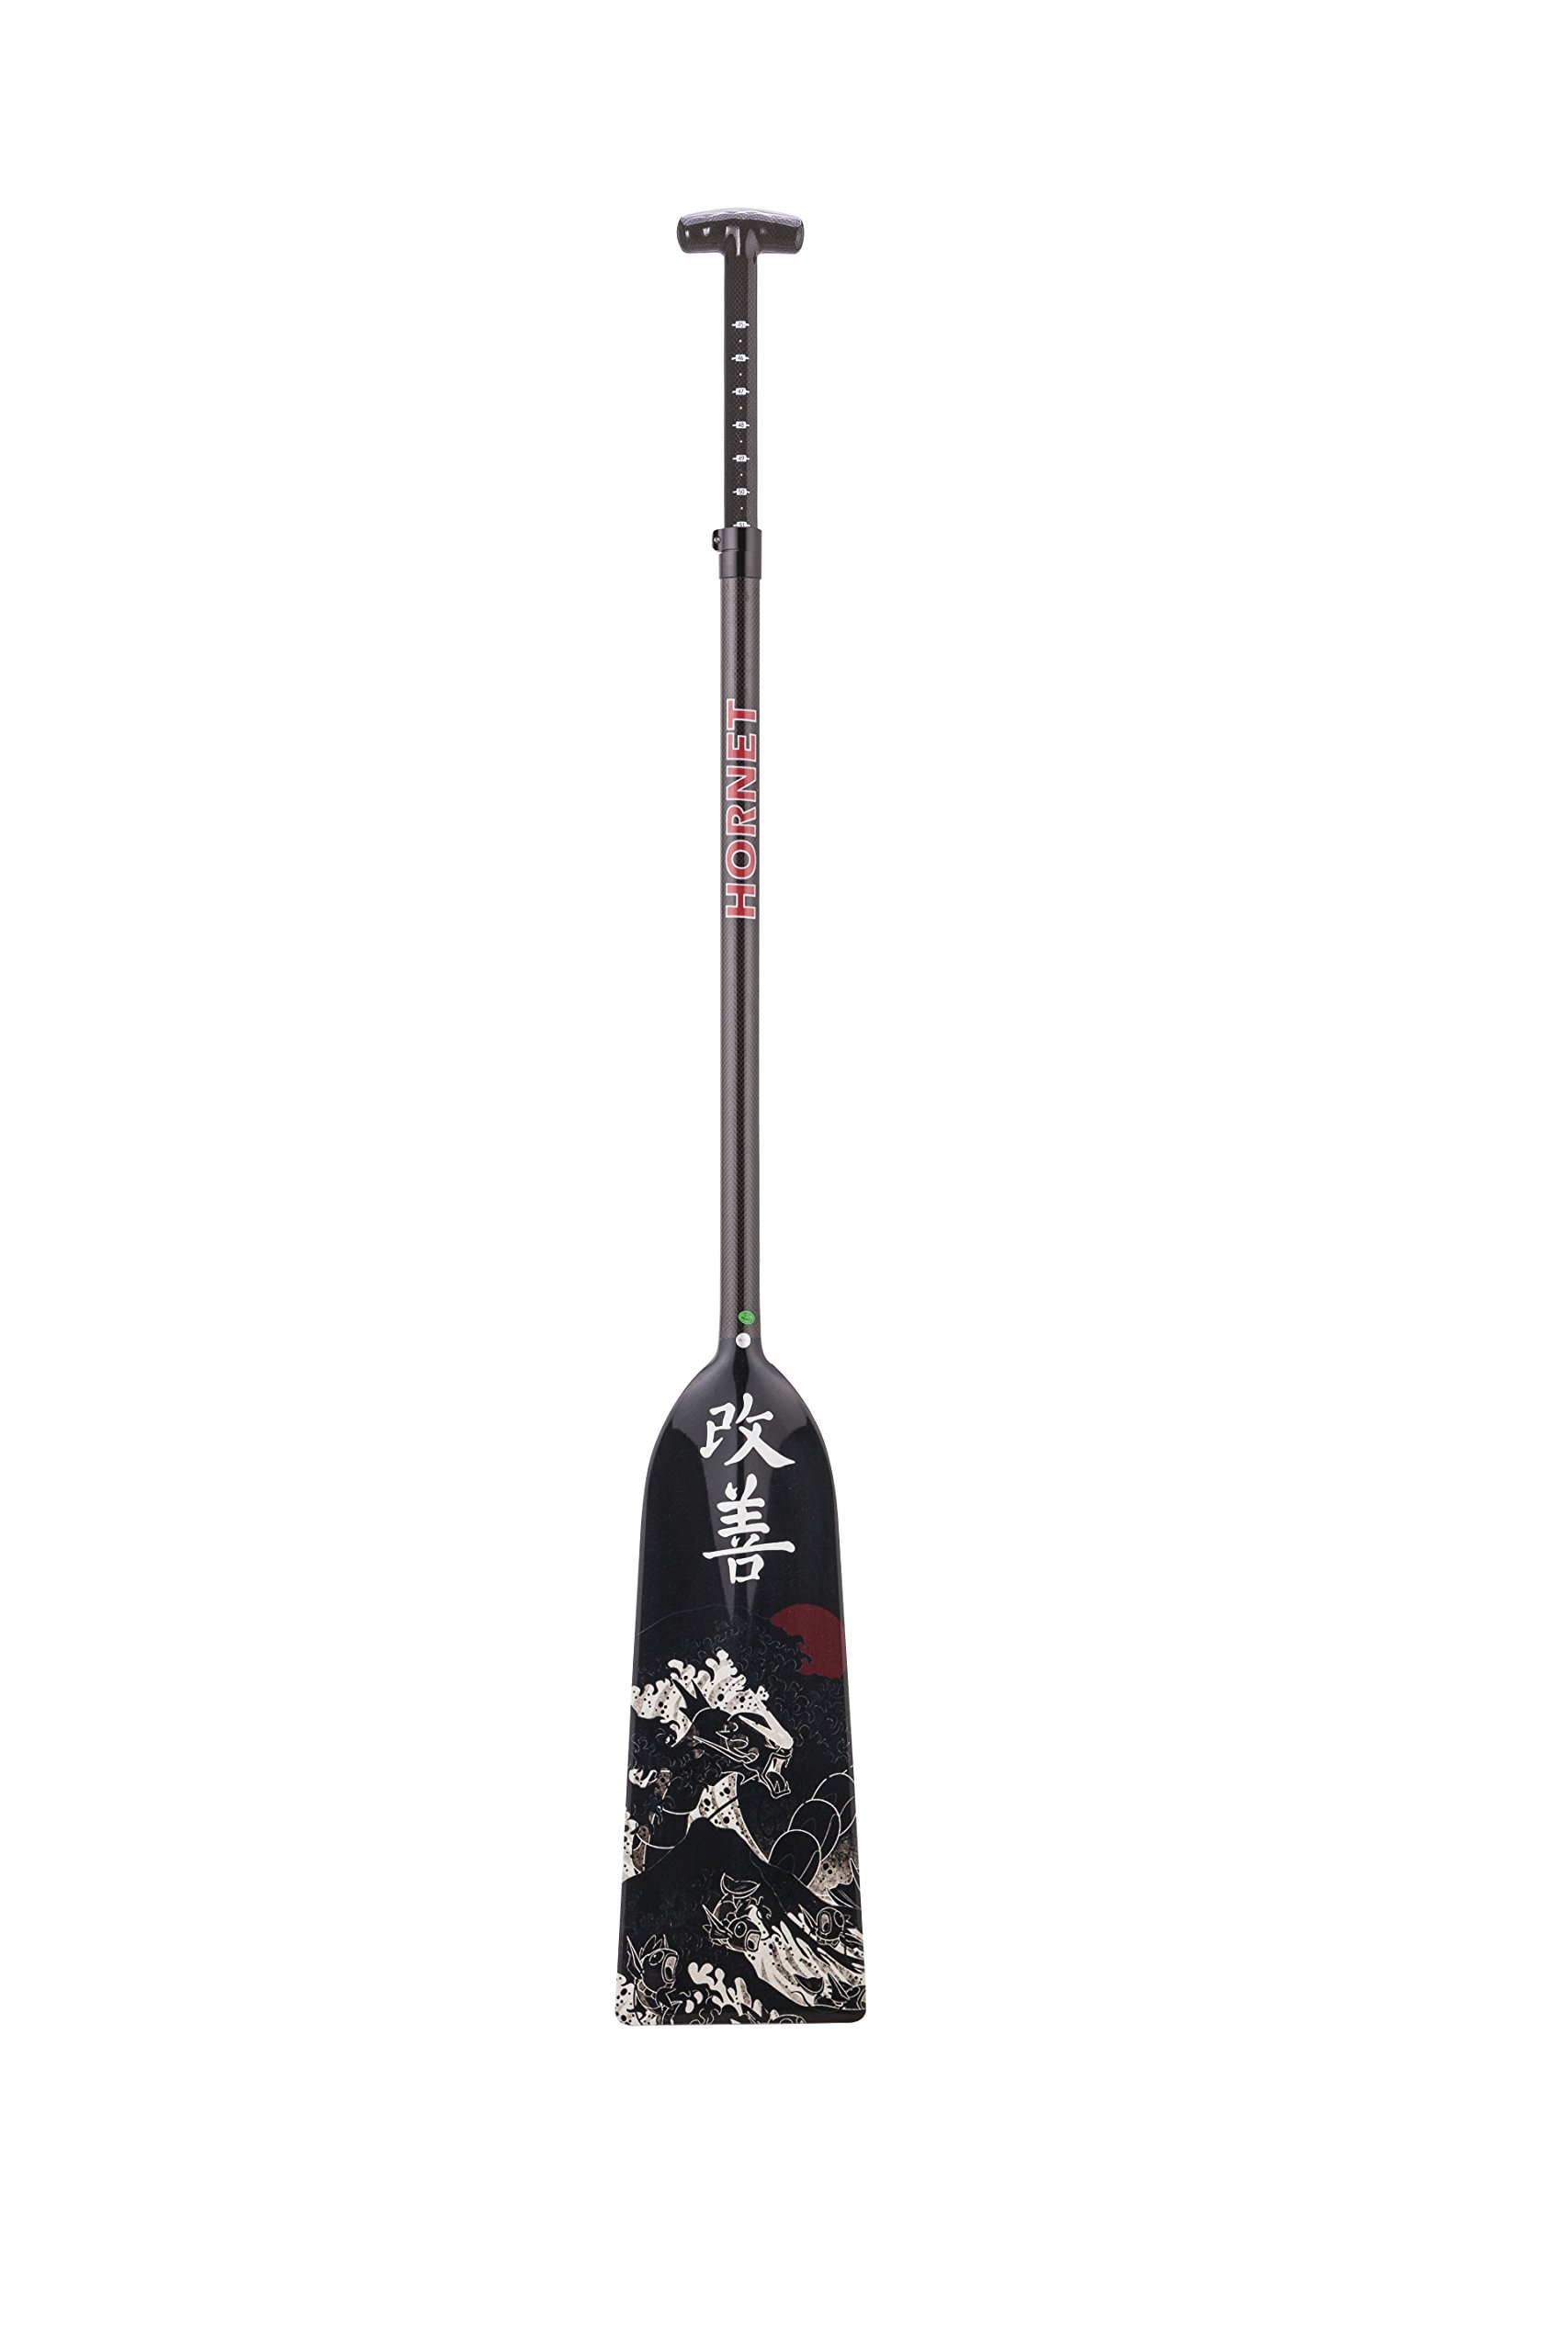 Hornet Watersports Dragon Boat Paddle Adjustable Carbon Fiber Kaizen by Lightweight IDBF Approved by Hornet Watersports (Image #4)